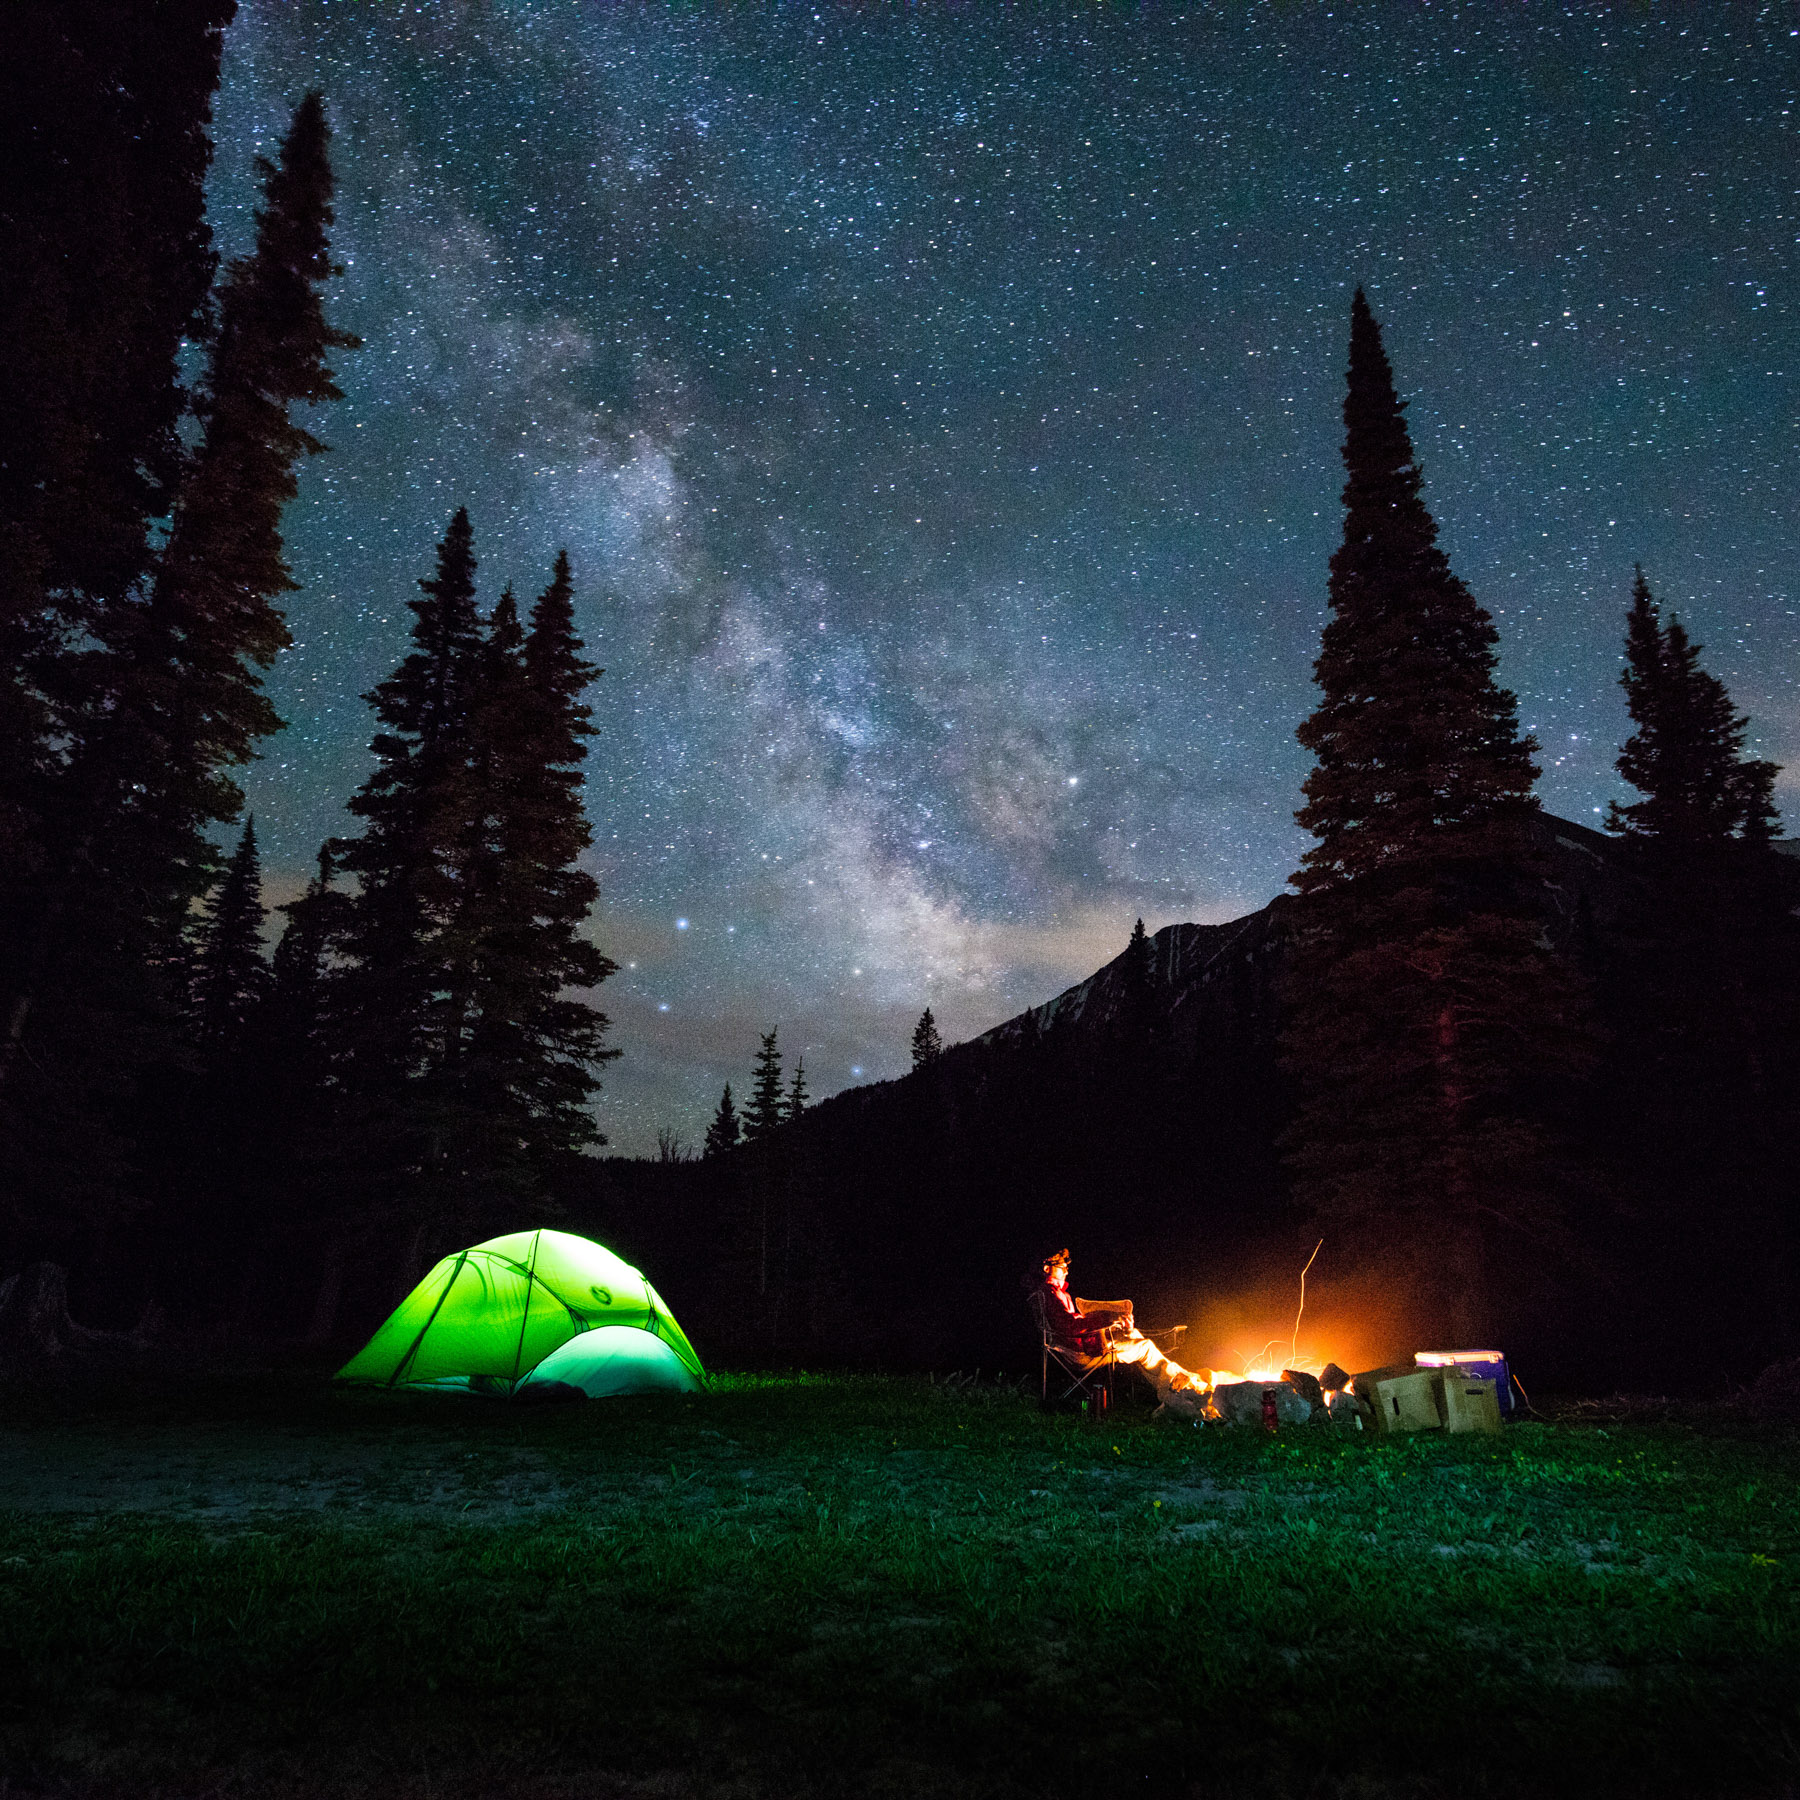 Lifestyle night photo of Nemo tent and guy sitting by fireplace with Milky Way in Bozeman, Montana.